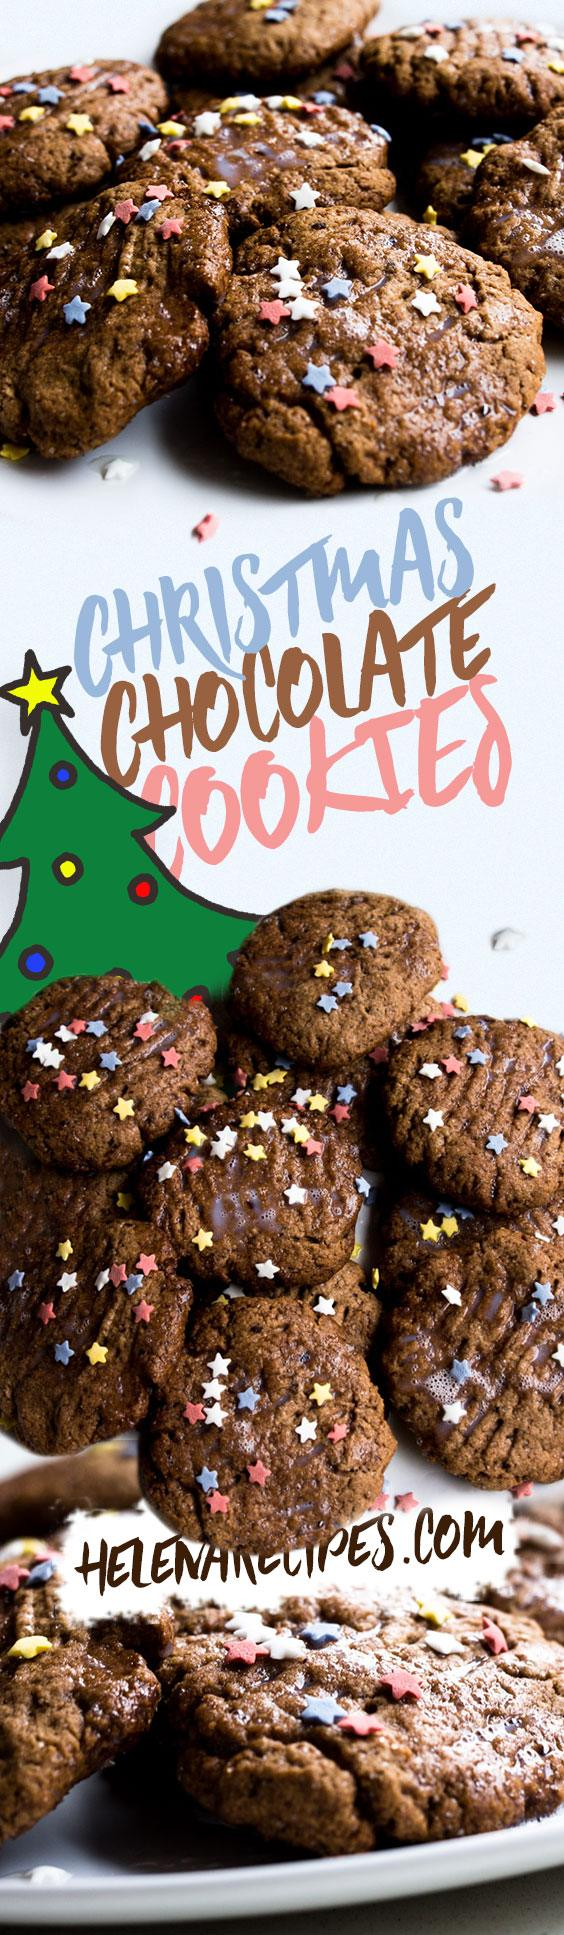 Christmas-Chocolate-Cookies-for-Pinterest